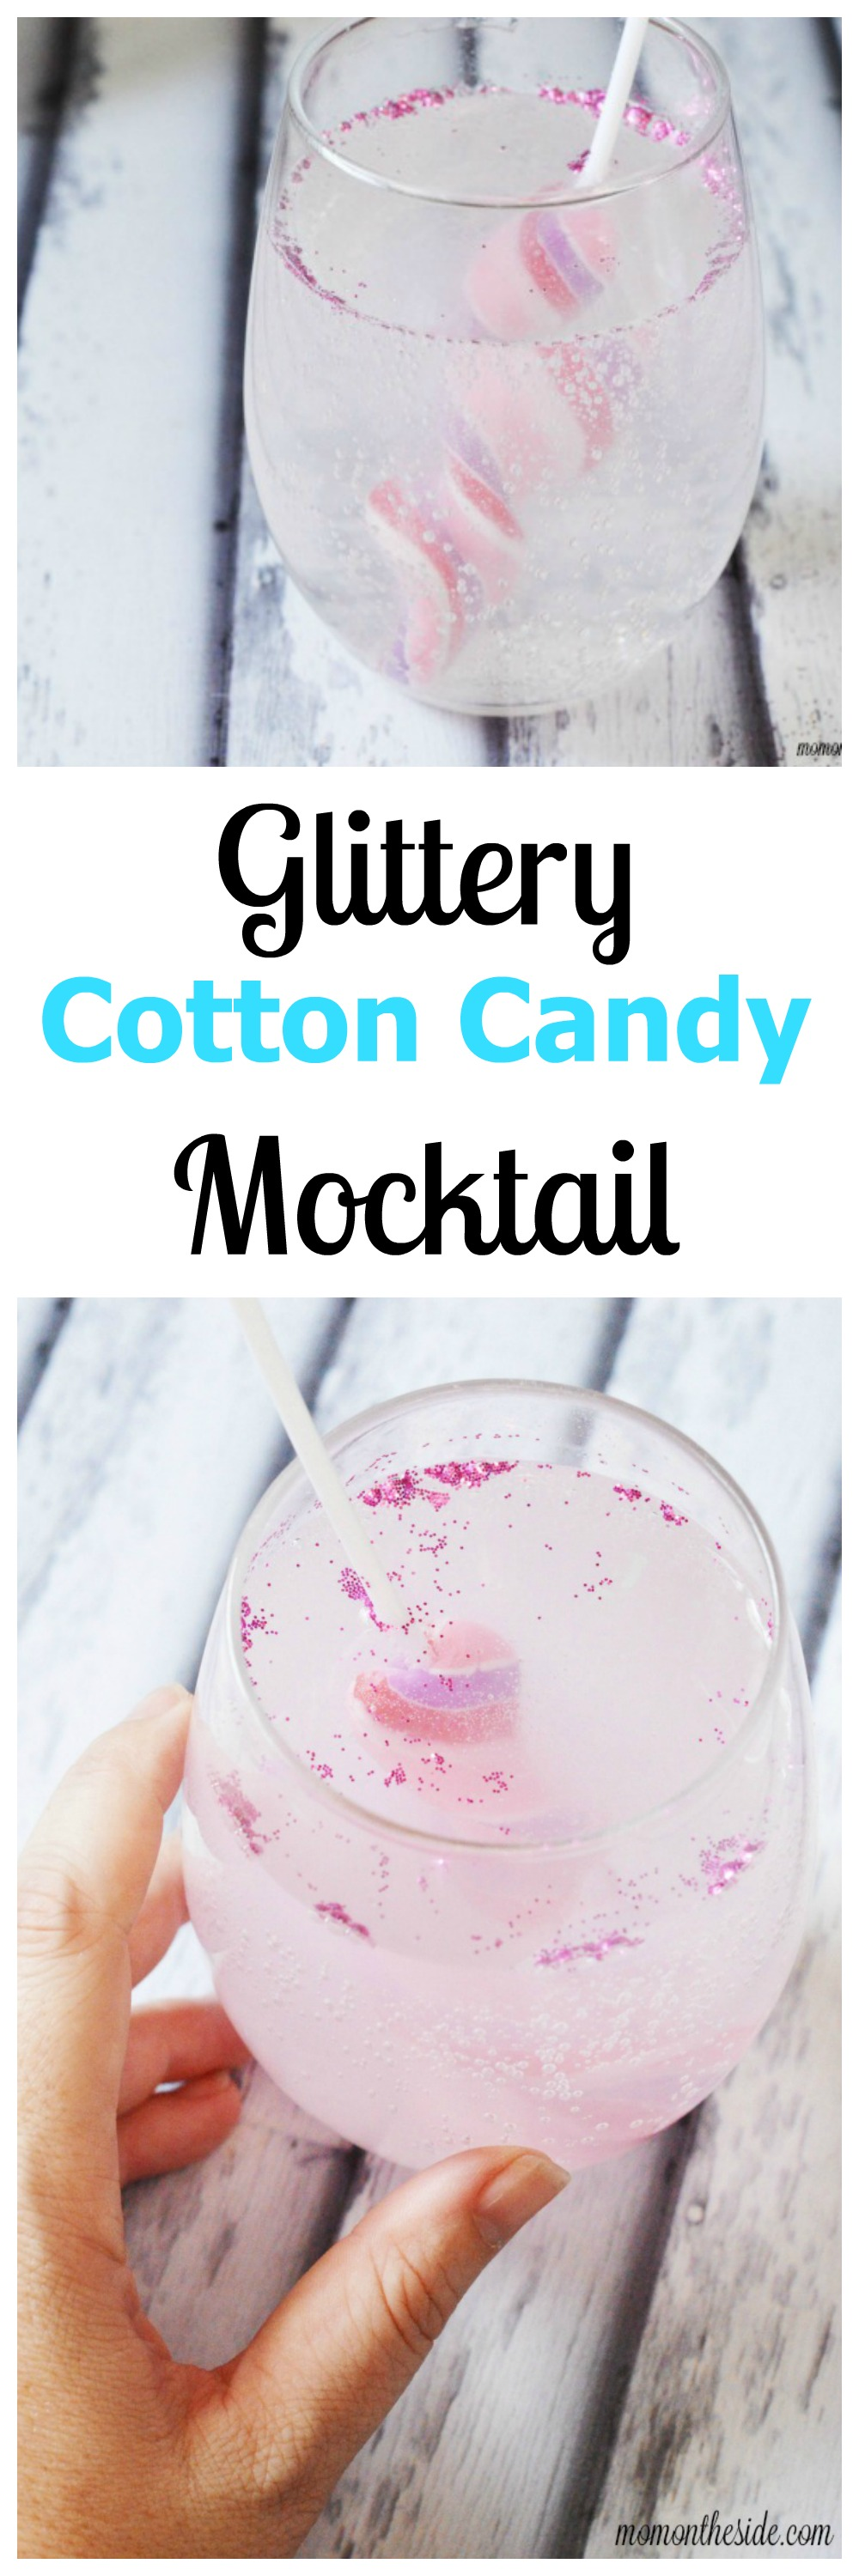 How to Make a Cotton Candy Cocktail